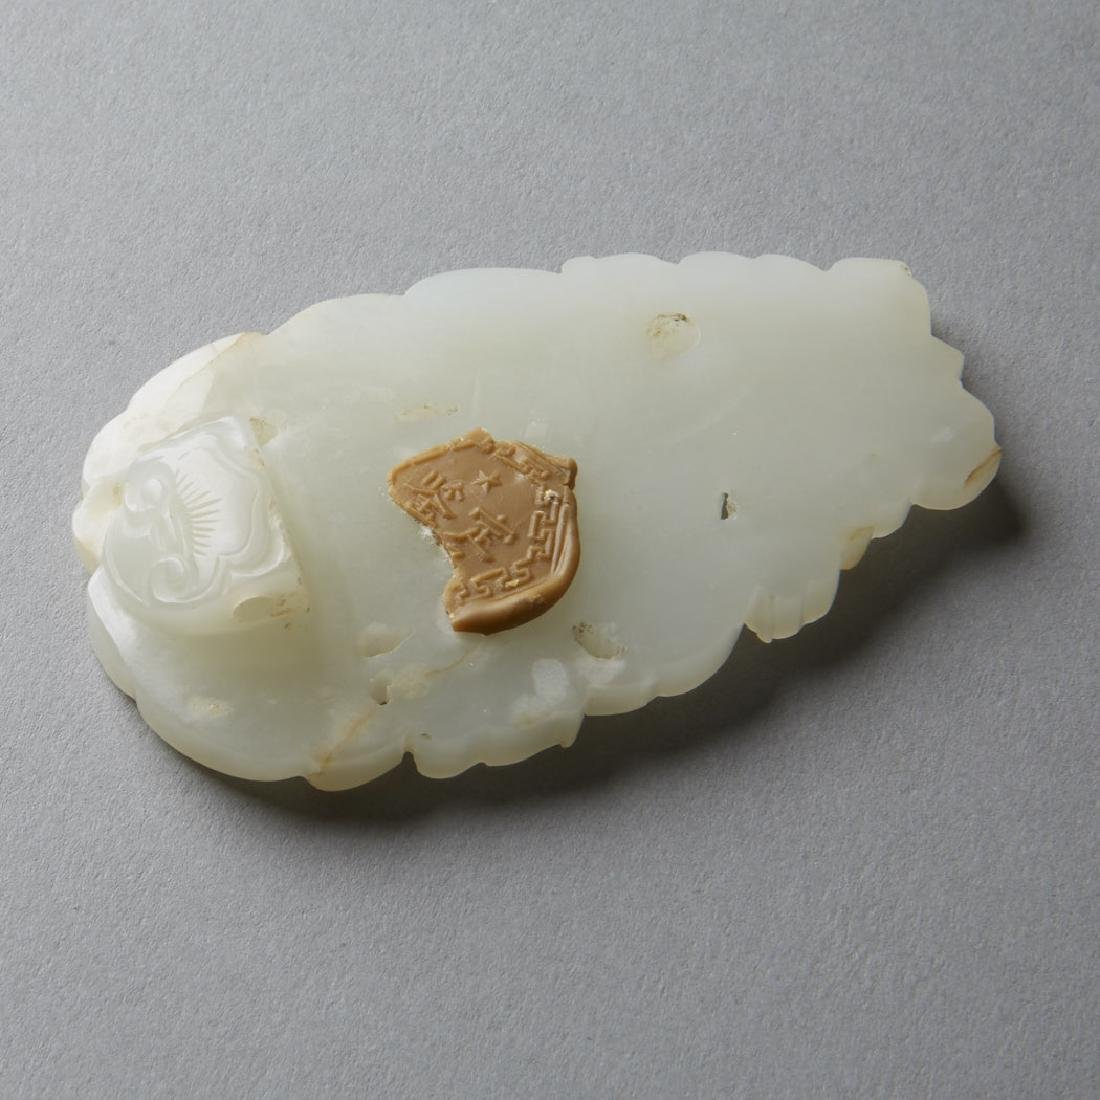 Chinese Pale Jade Pendant Butterfly & Gourds - BTC Acpt - 3